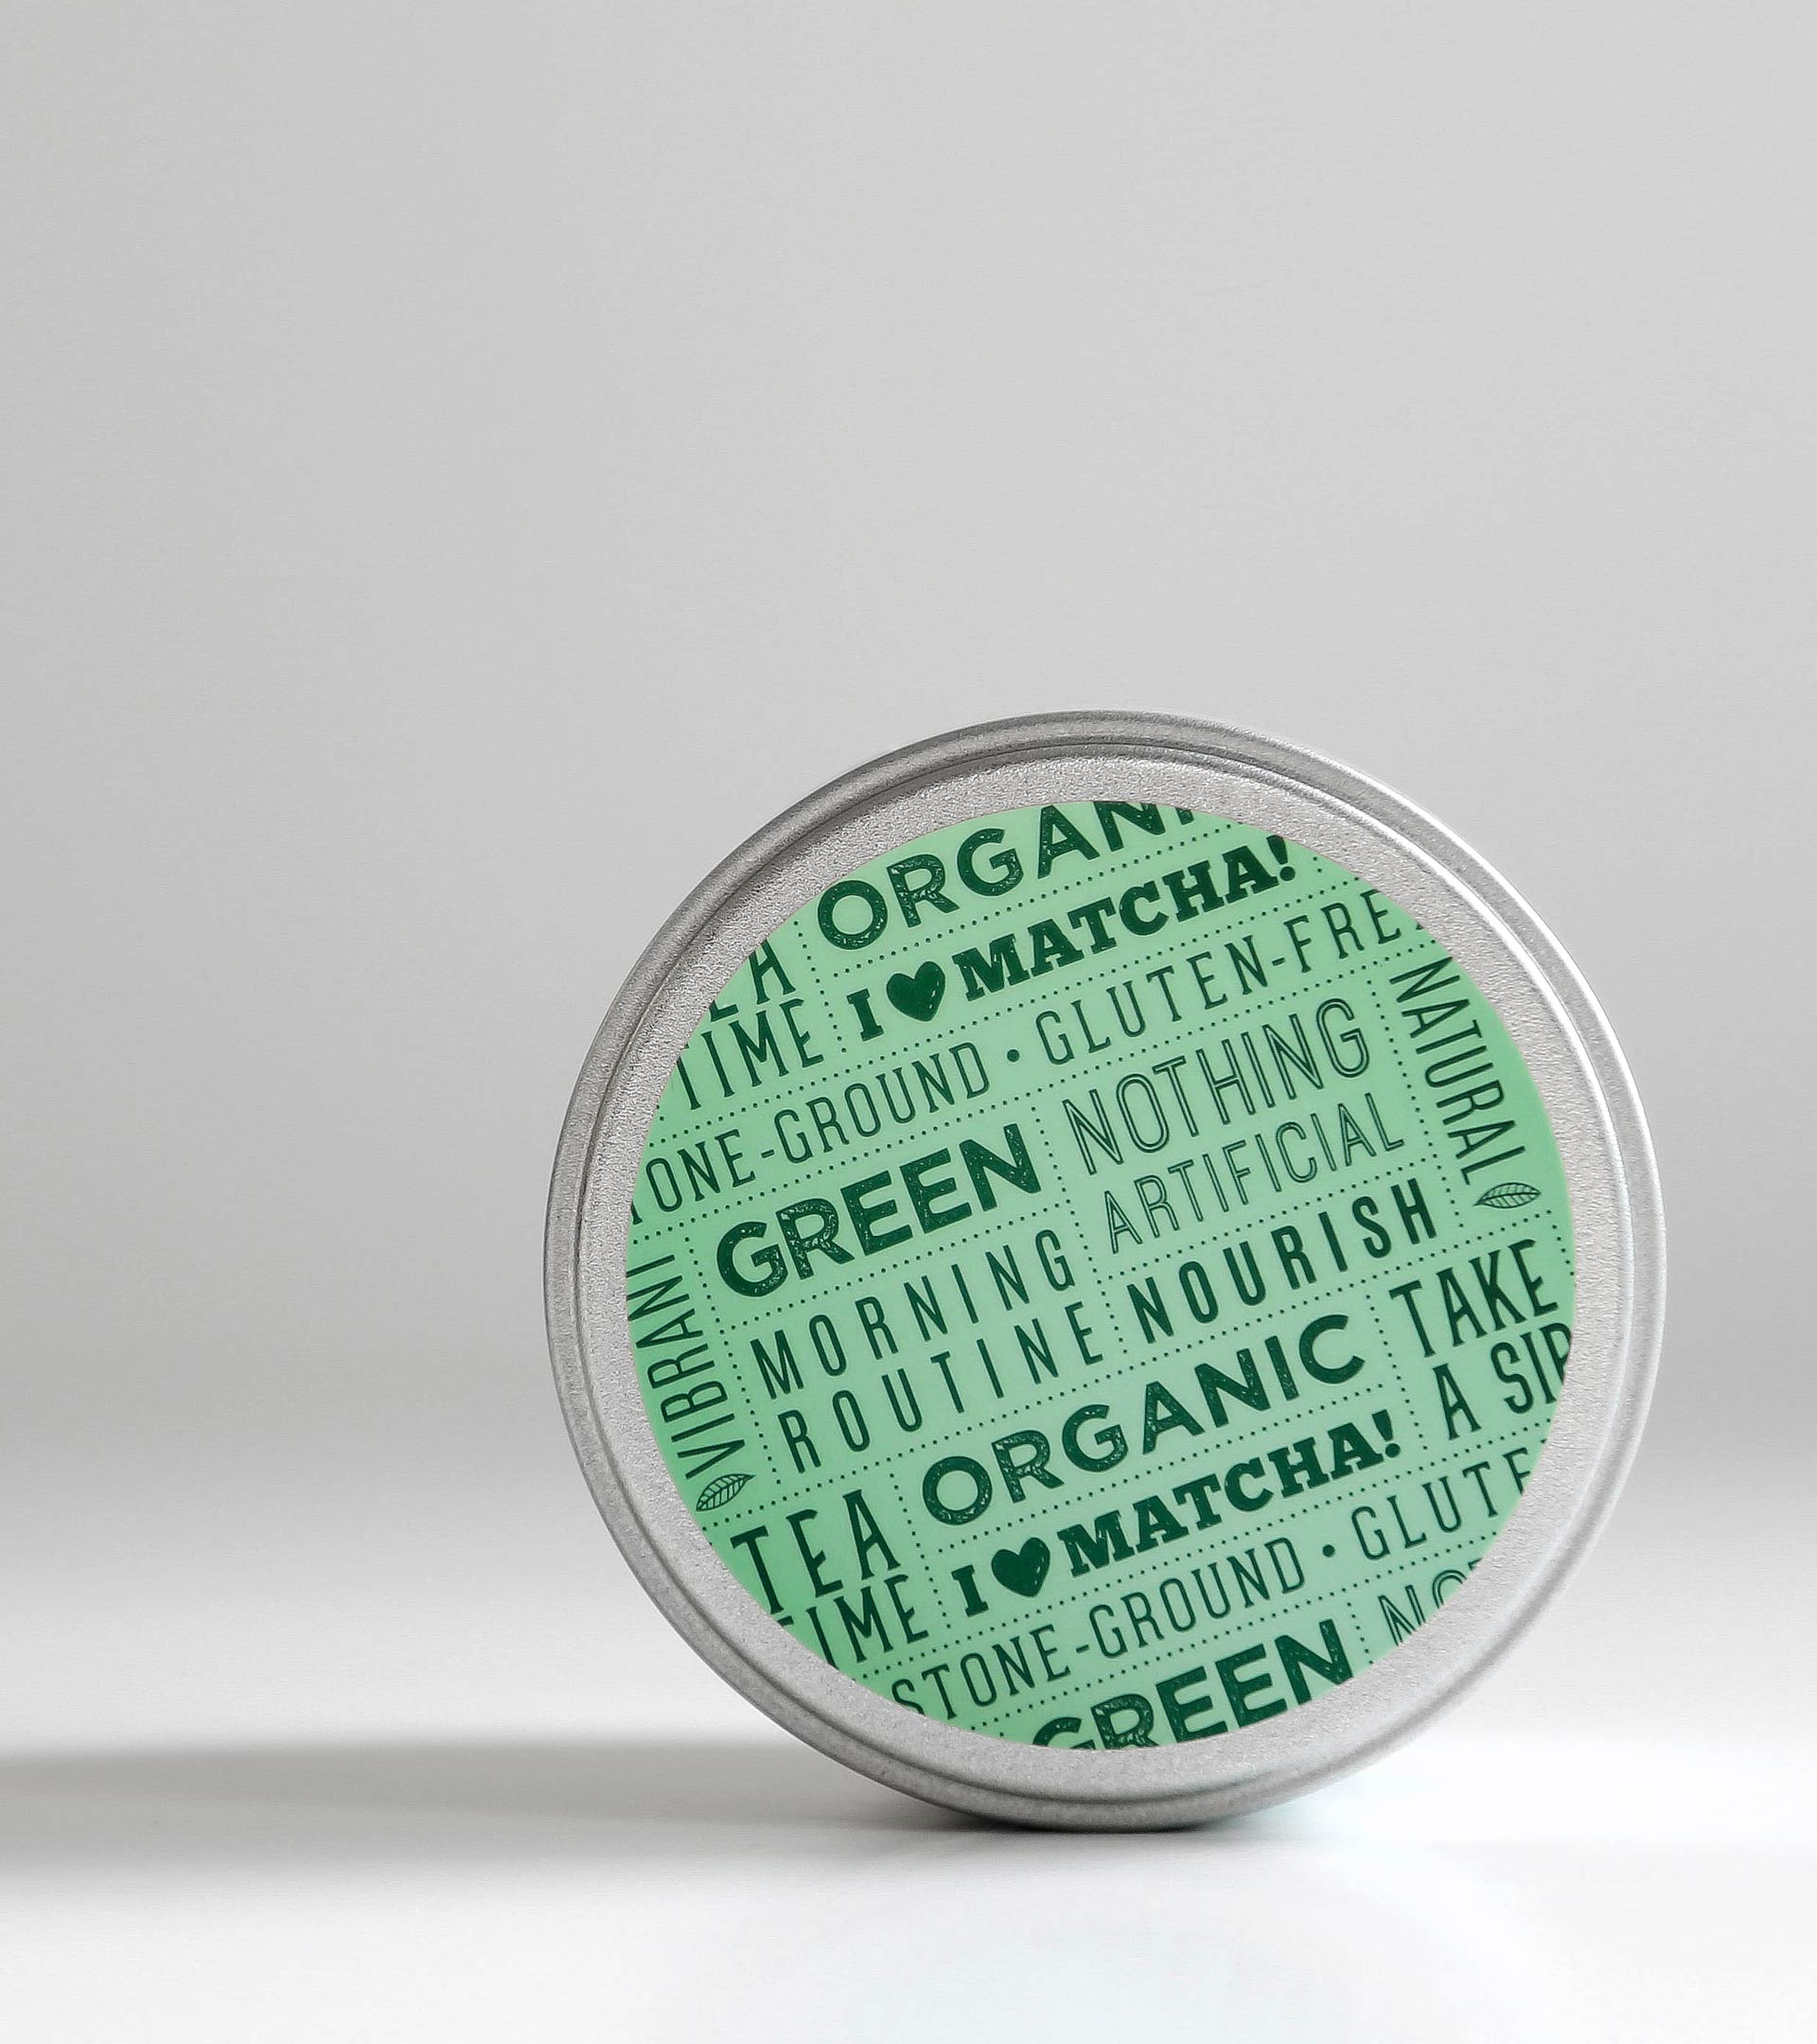 Where to buy Soar Organics matcha